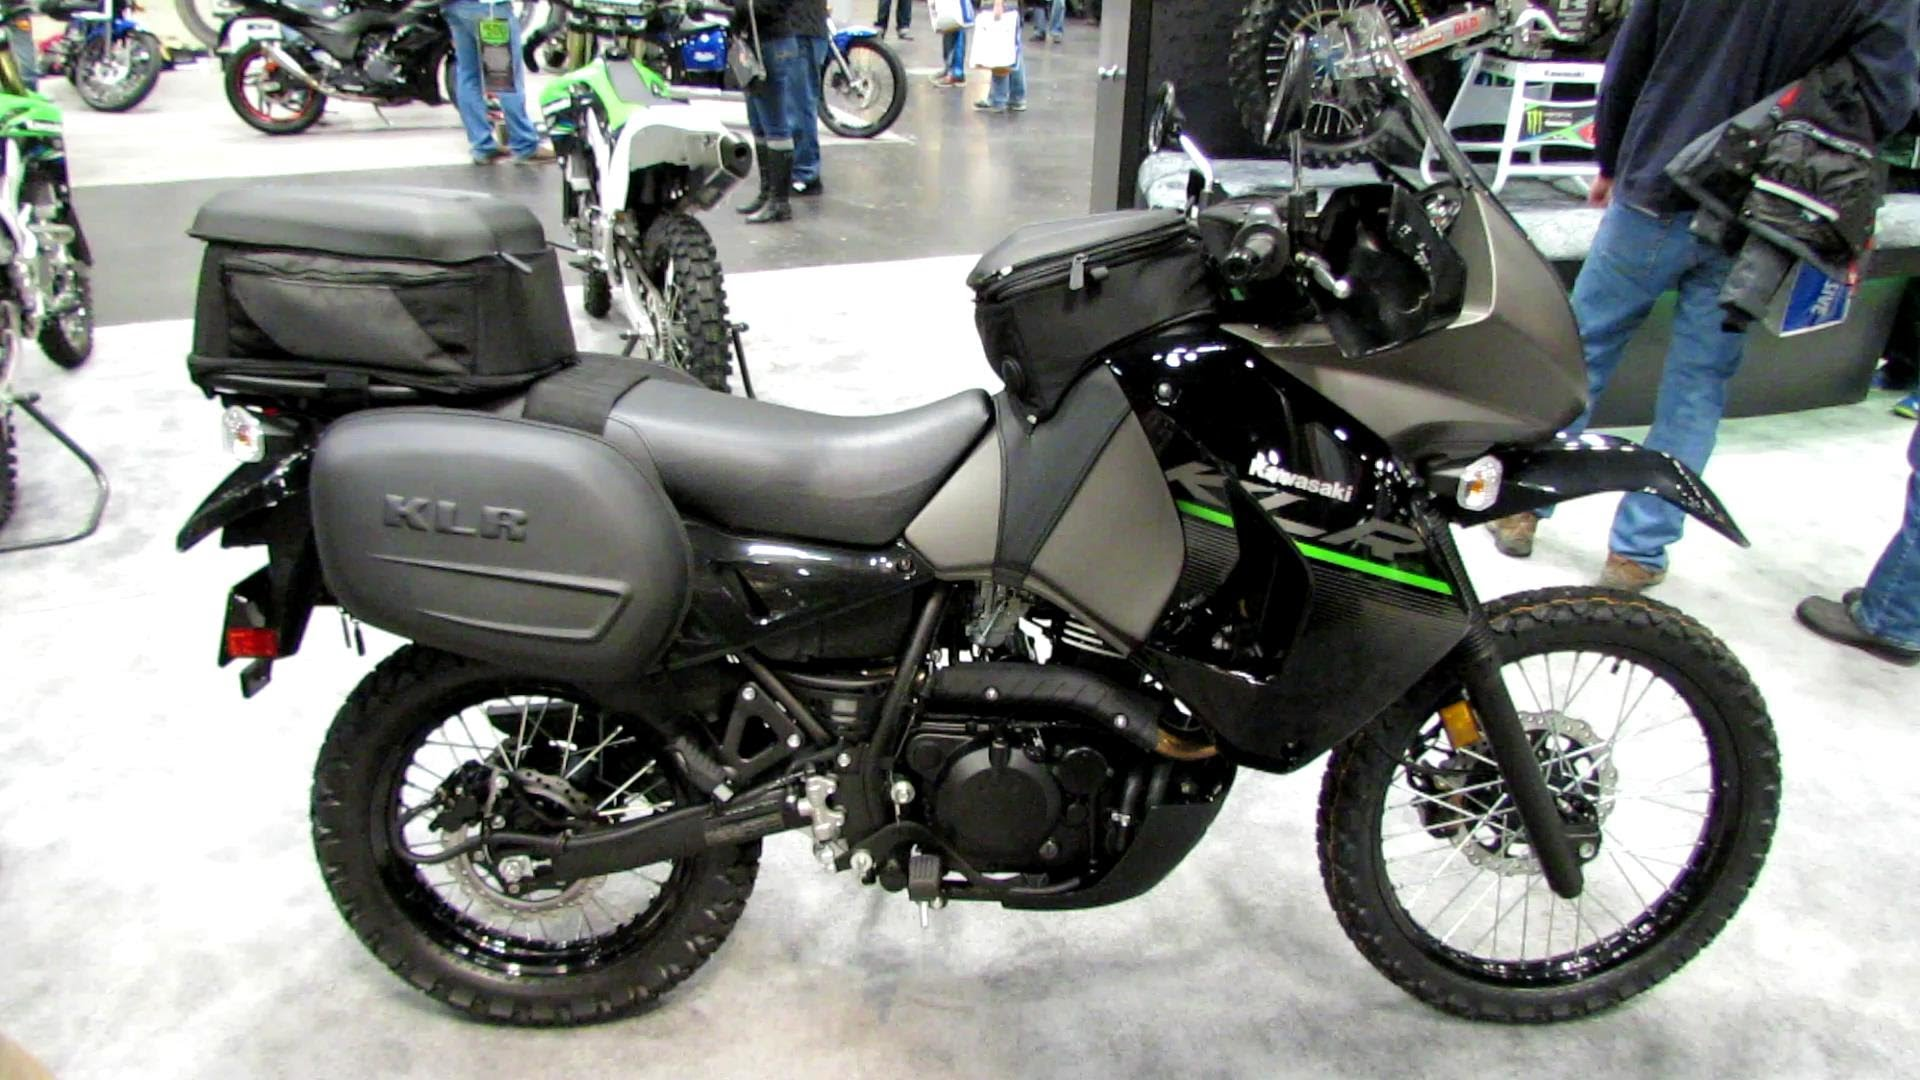 hight resolution of back download kawasaki klr 650 picture 14 size 1920x1080 next